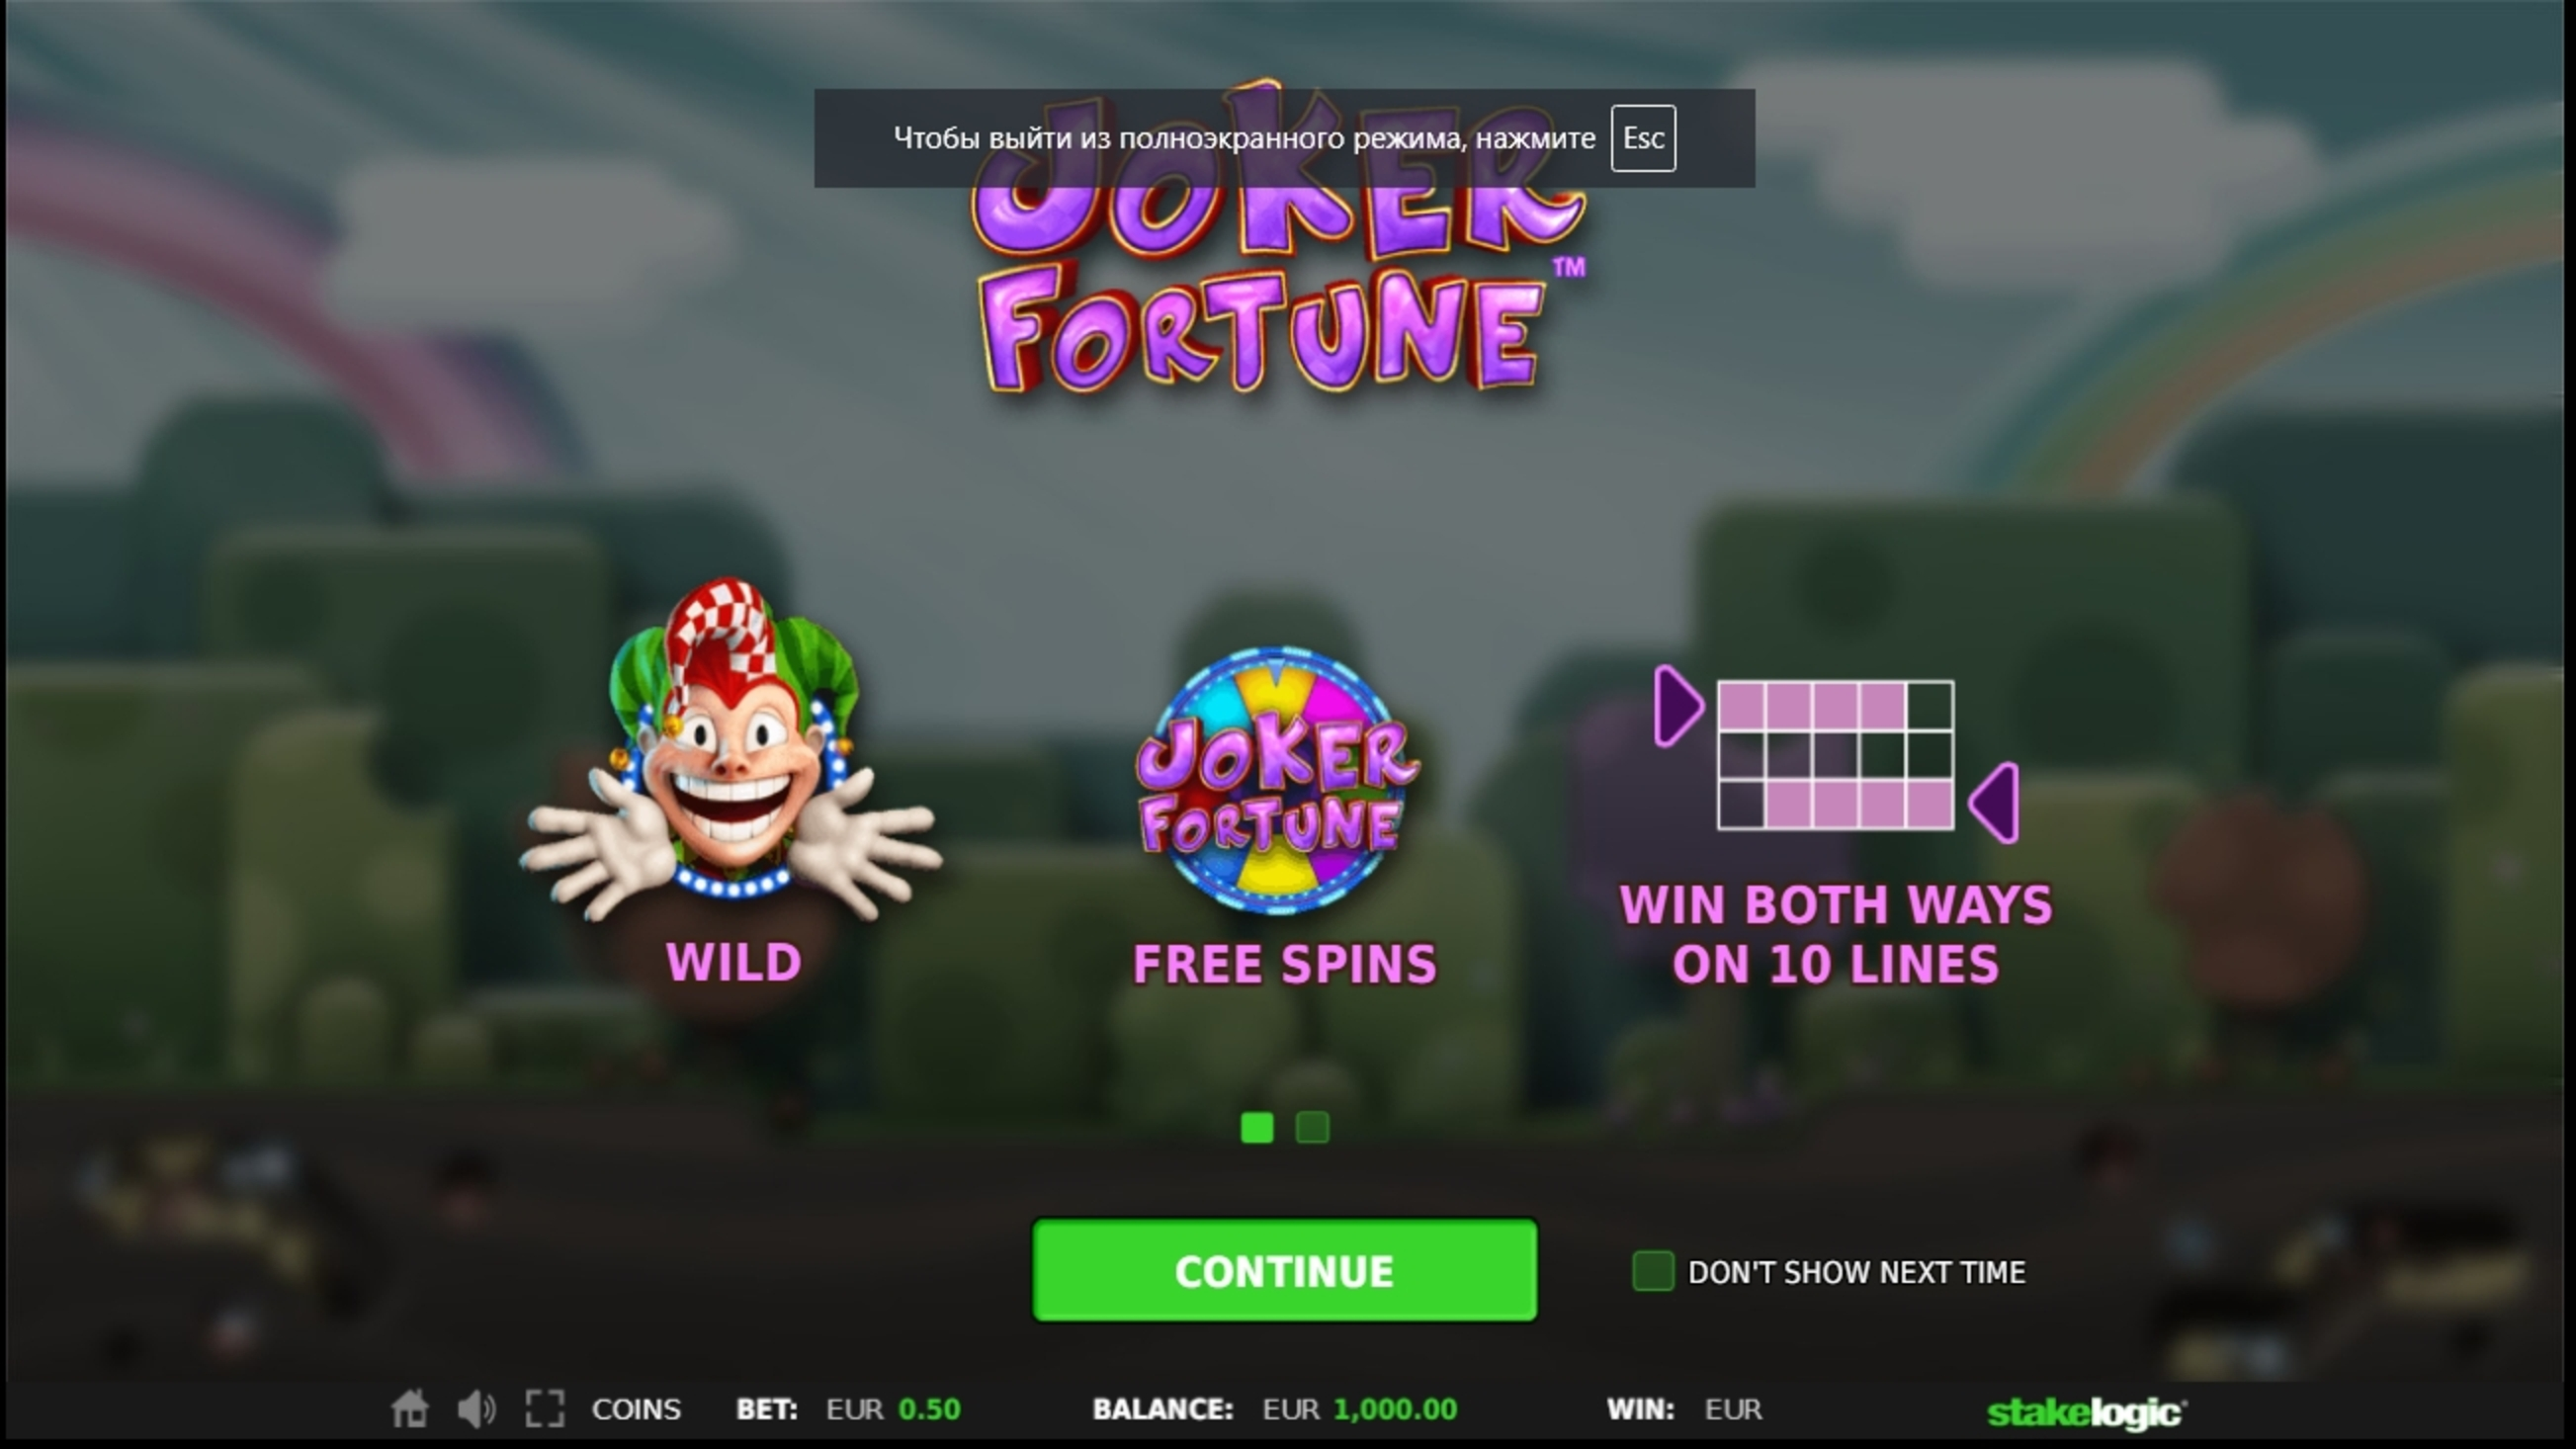 Play Joker Fortune Free Casino Slot Game by StakeLogic